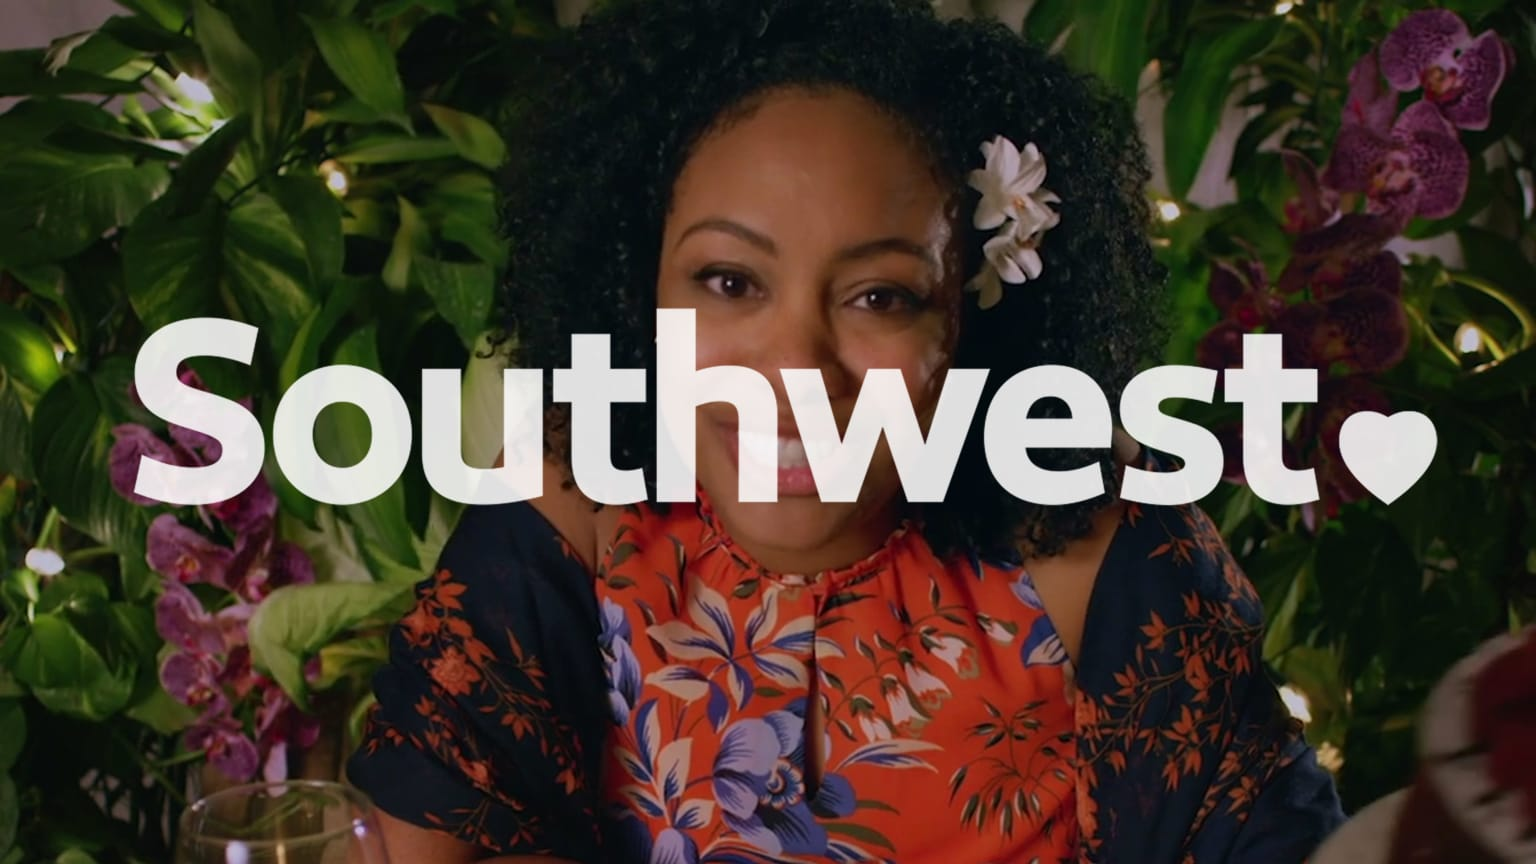 Southwest Airlines - Micro Stories